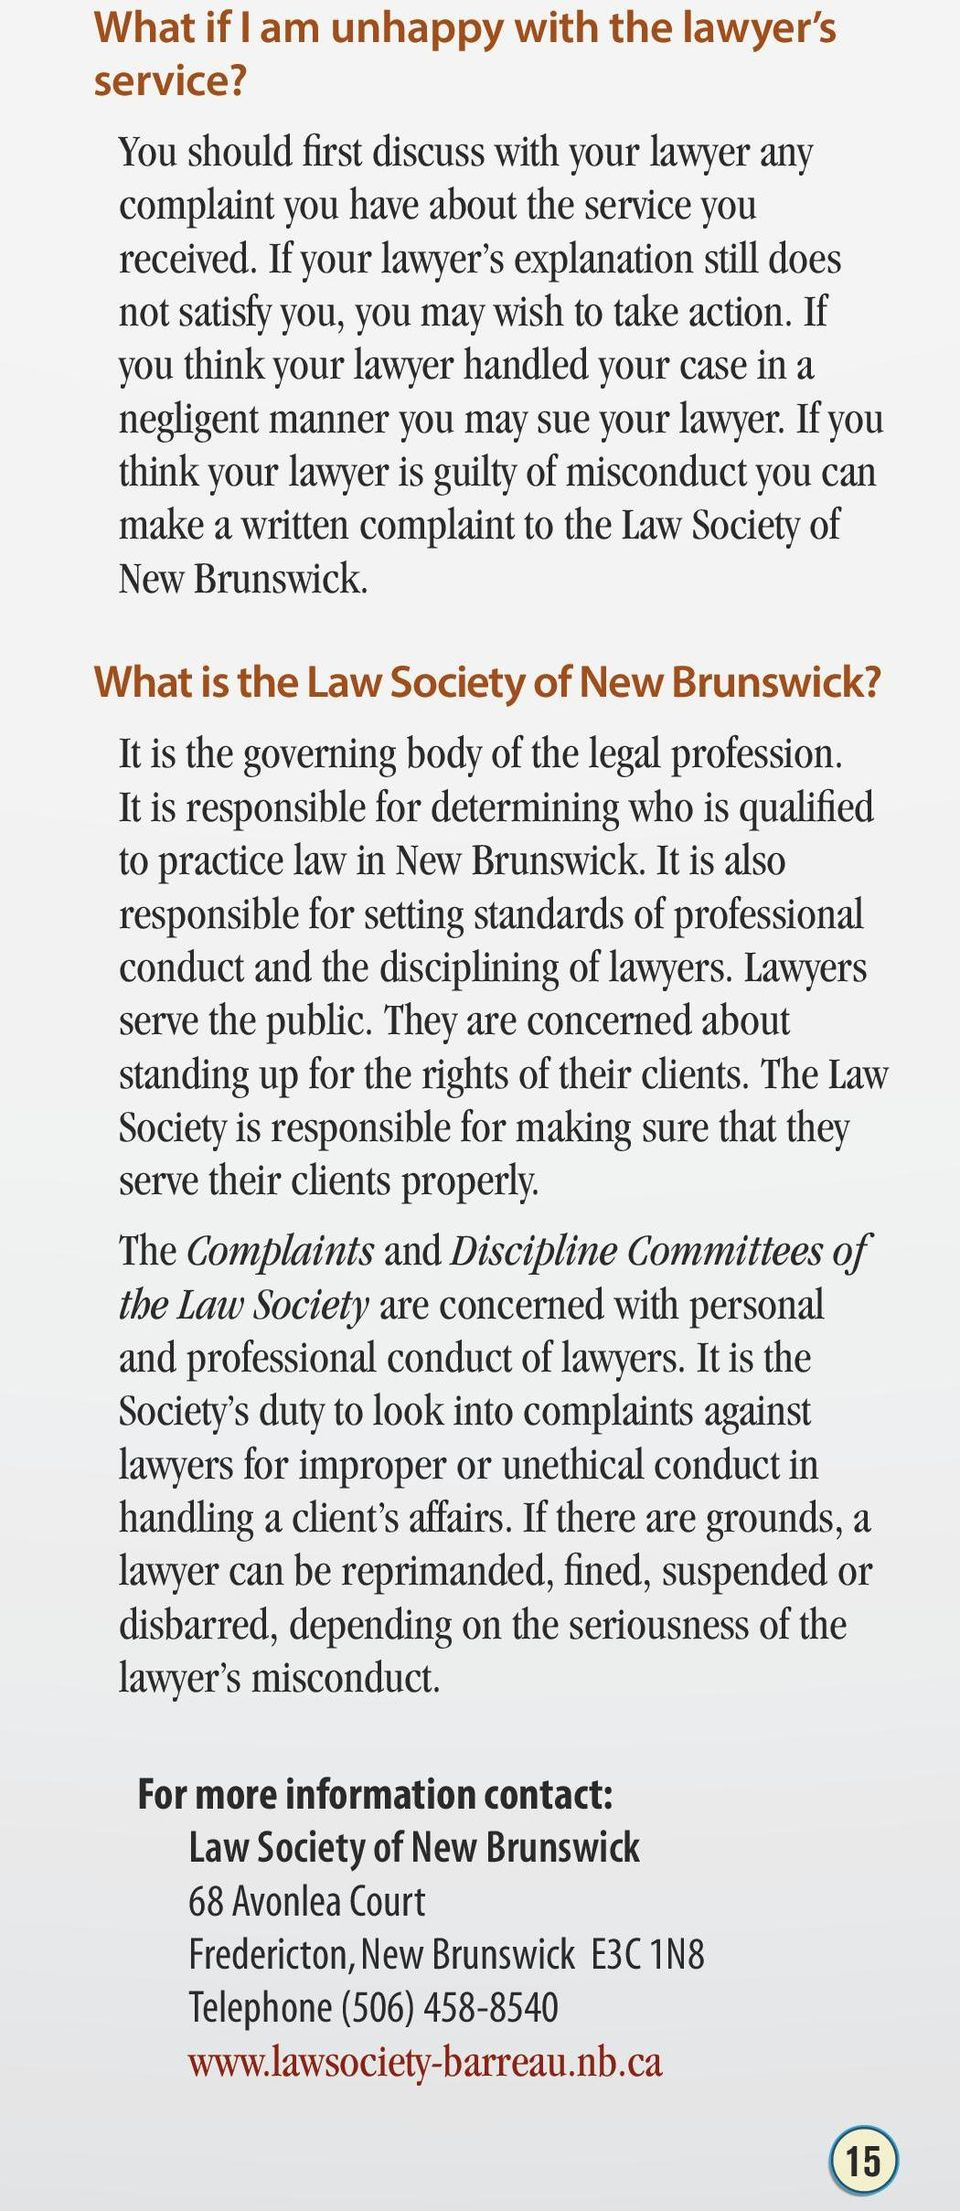 If you think your lawyer is guilty of misconduct you can make a written complaint to the Law Society of New Brunswick. What is the Law Society of New Brunswick?